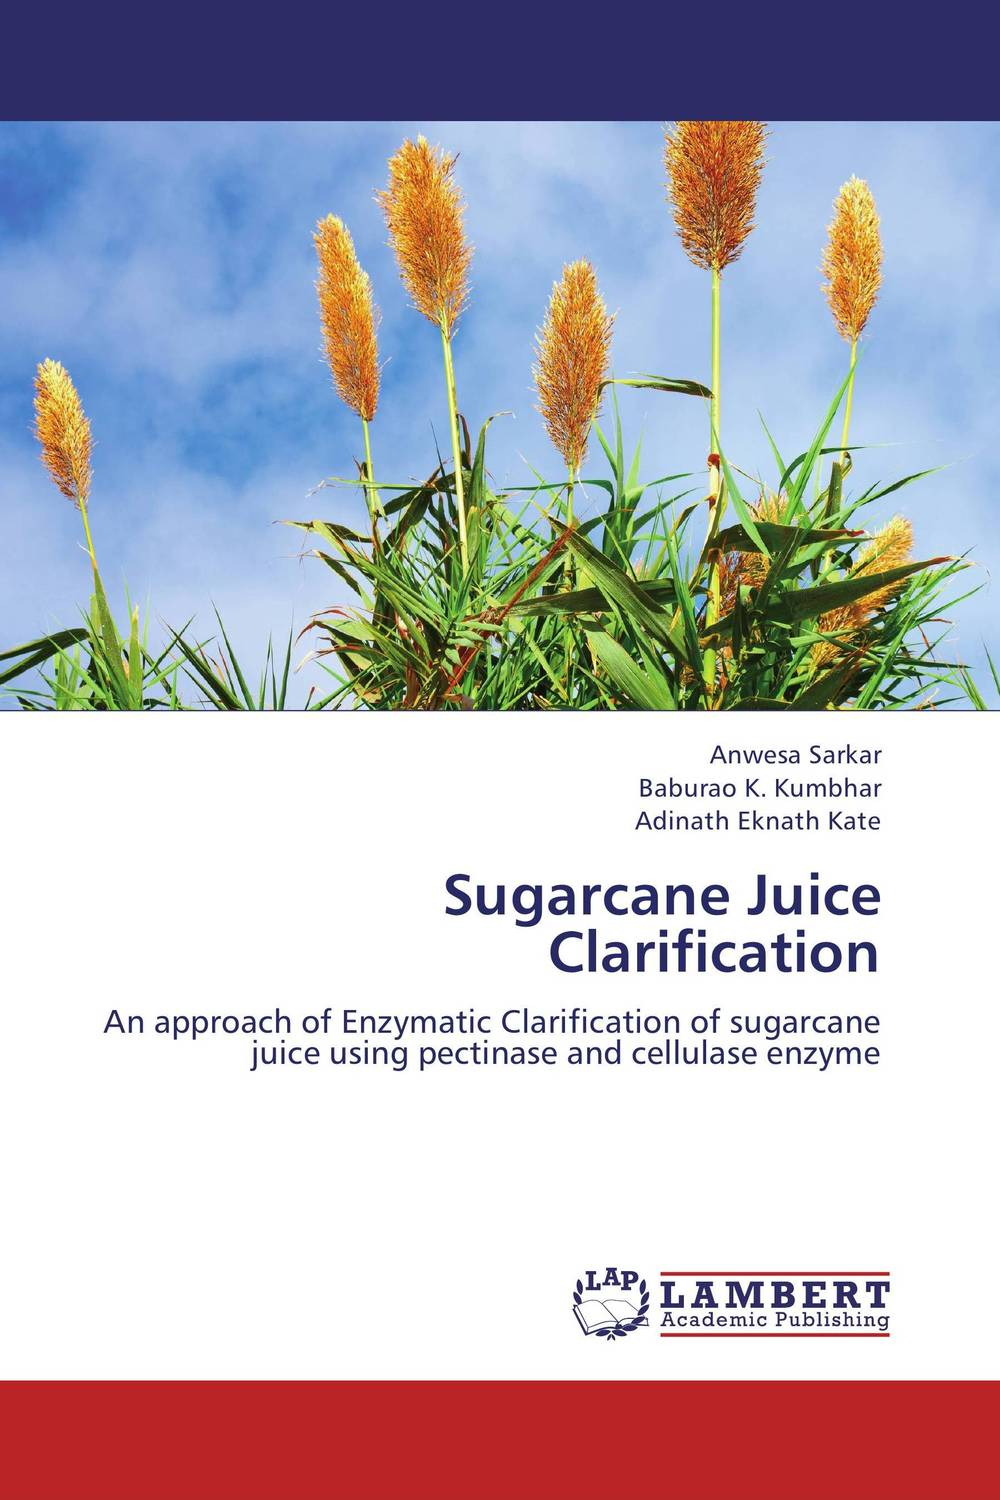 Sugarcane Juice Clarification enzymatic processing of clear fruit juices the case of pineapple